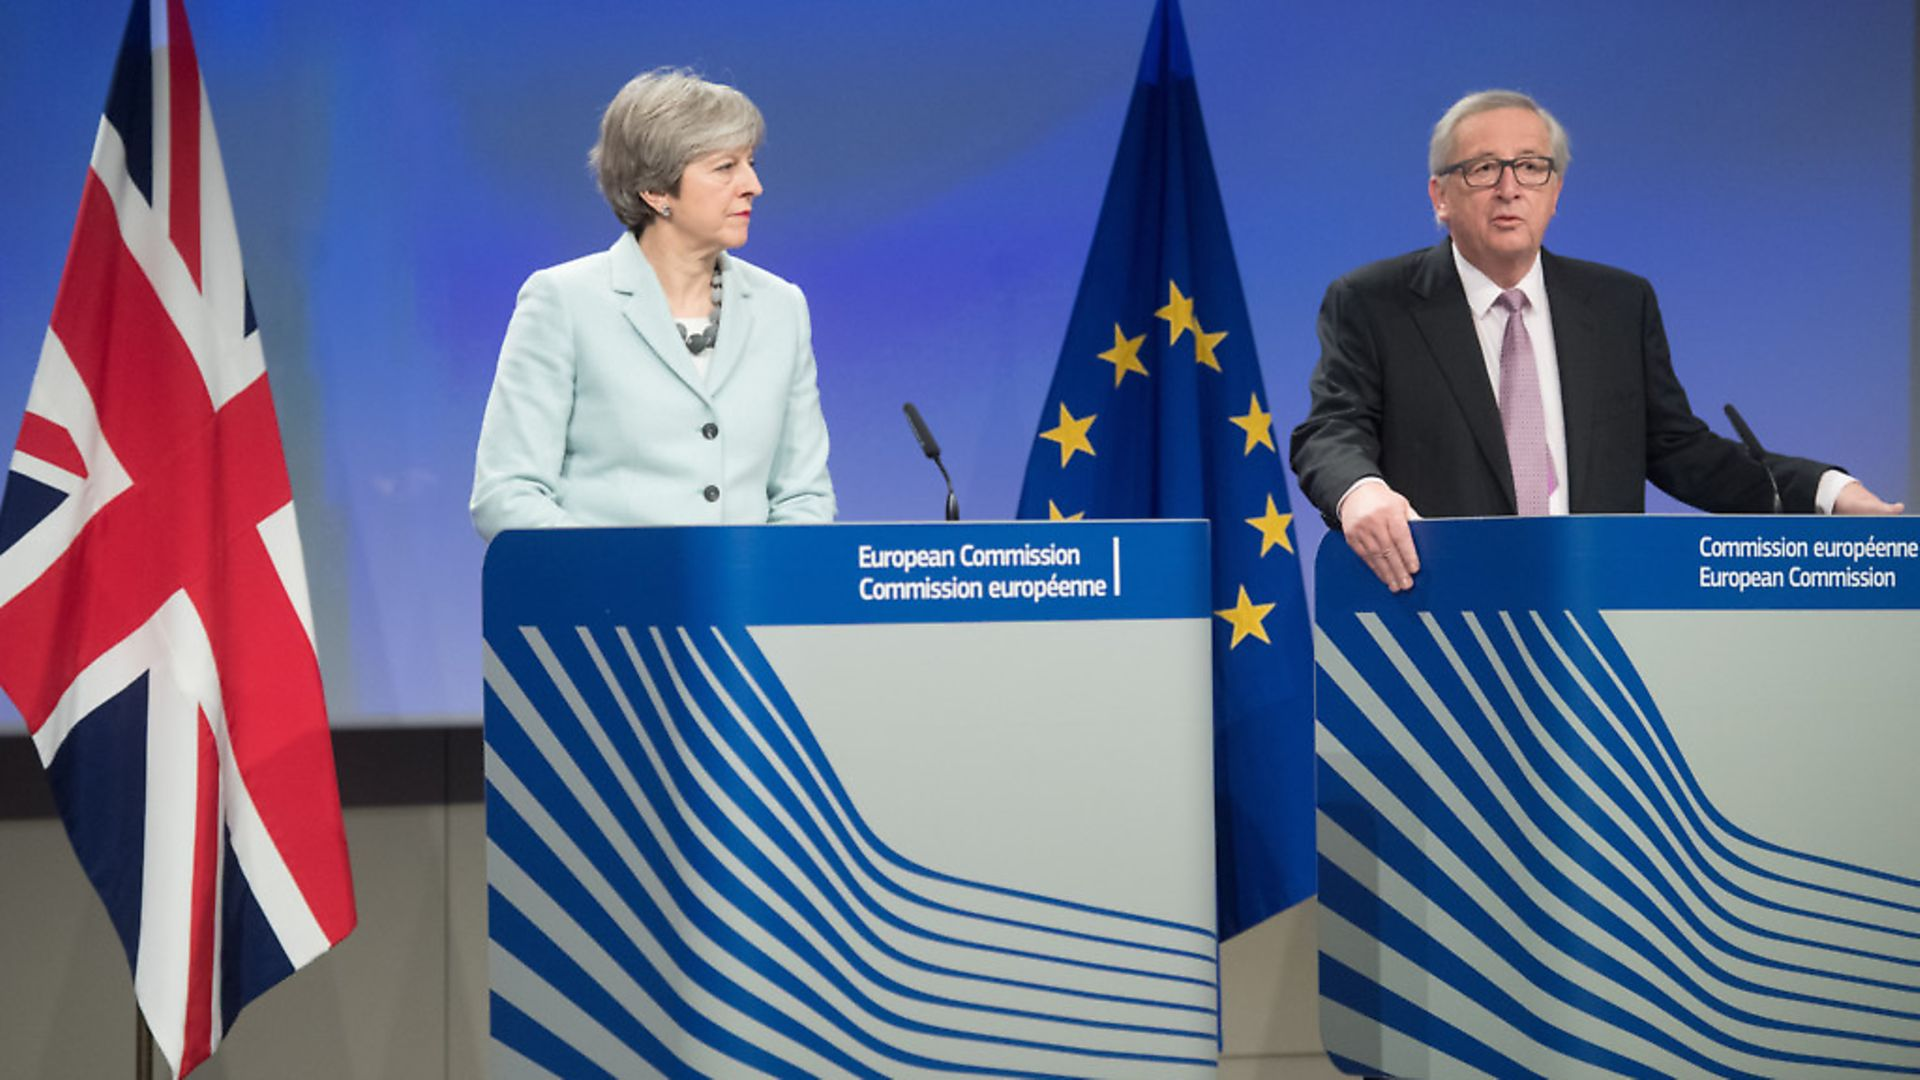 European Commission President Jean-Claude Juncker (R) and British Prime Minister Theresa May. (Photograph: Xinhua/The European Union) - Credit: Xinhua News Agency/PA Images